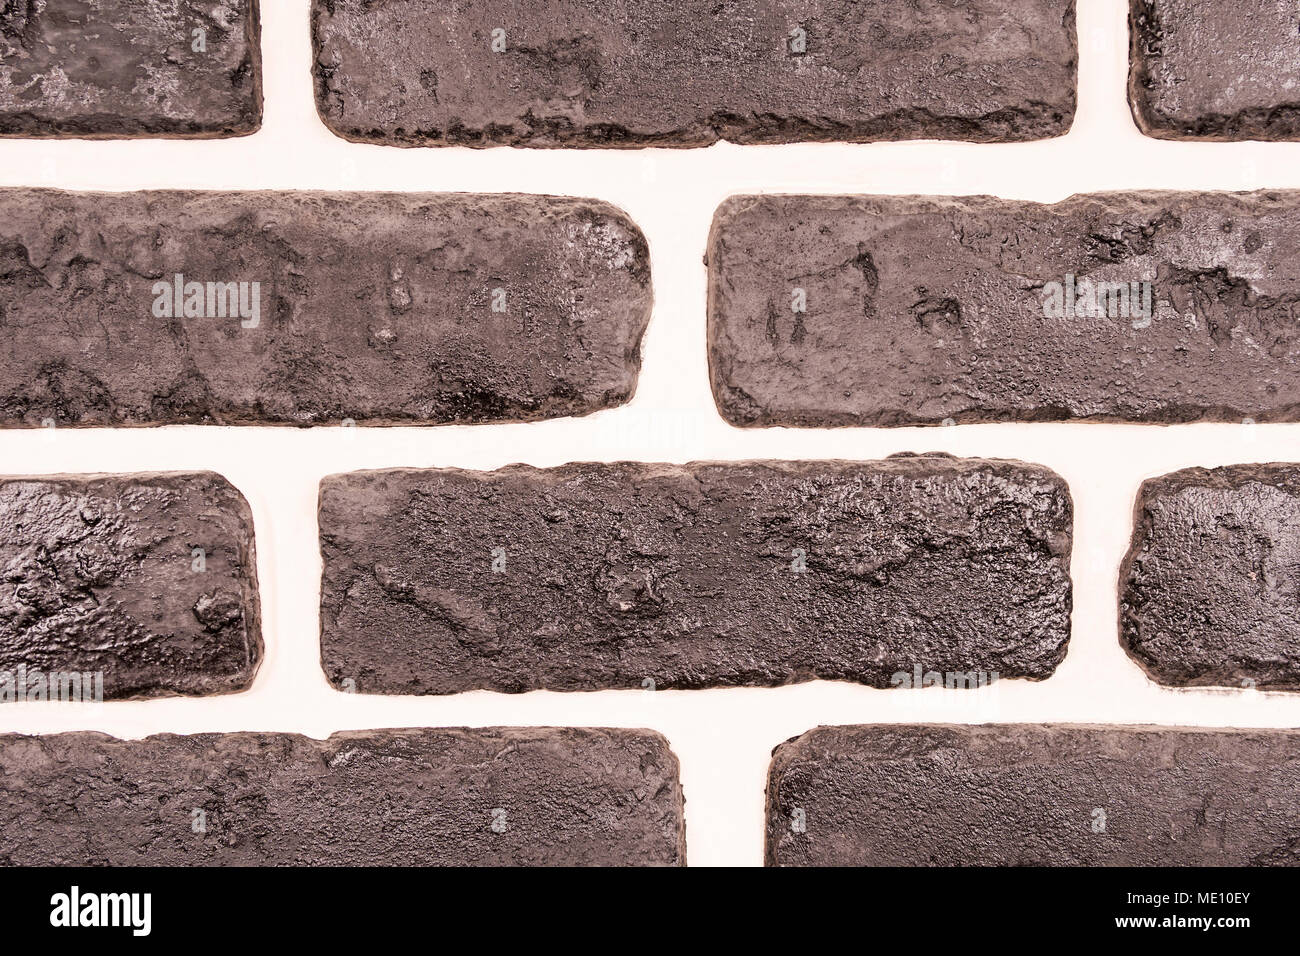 Black Decorative Brick Wall With White Clay Seams Close Up